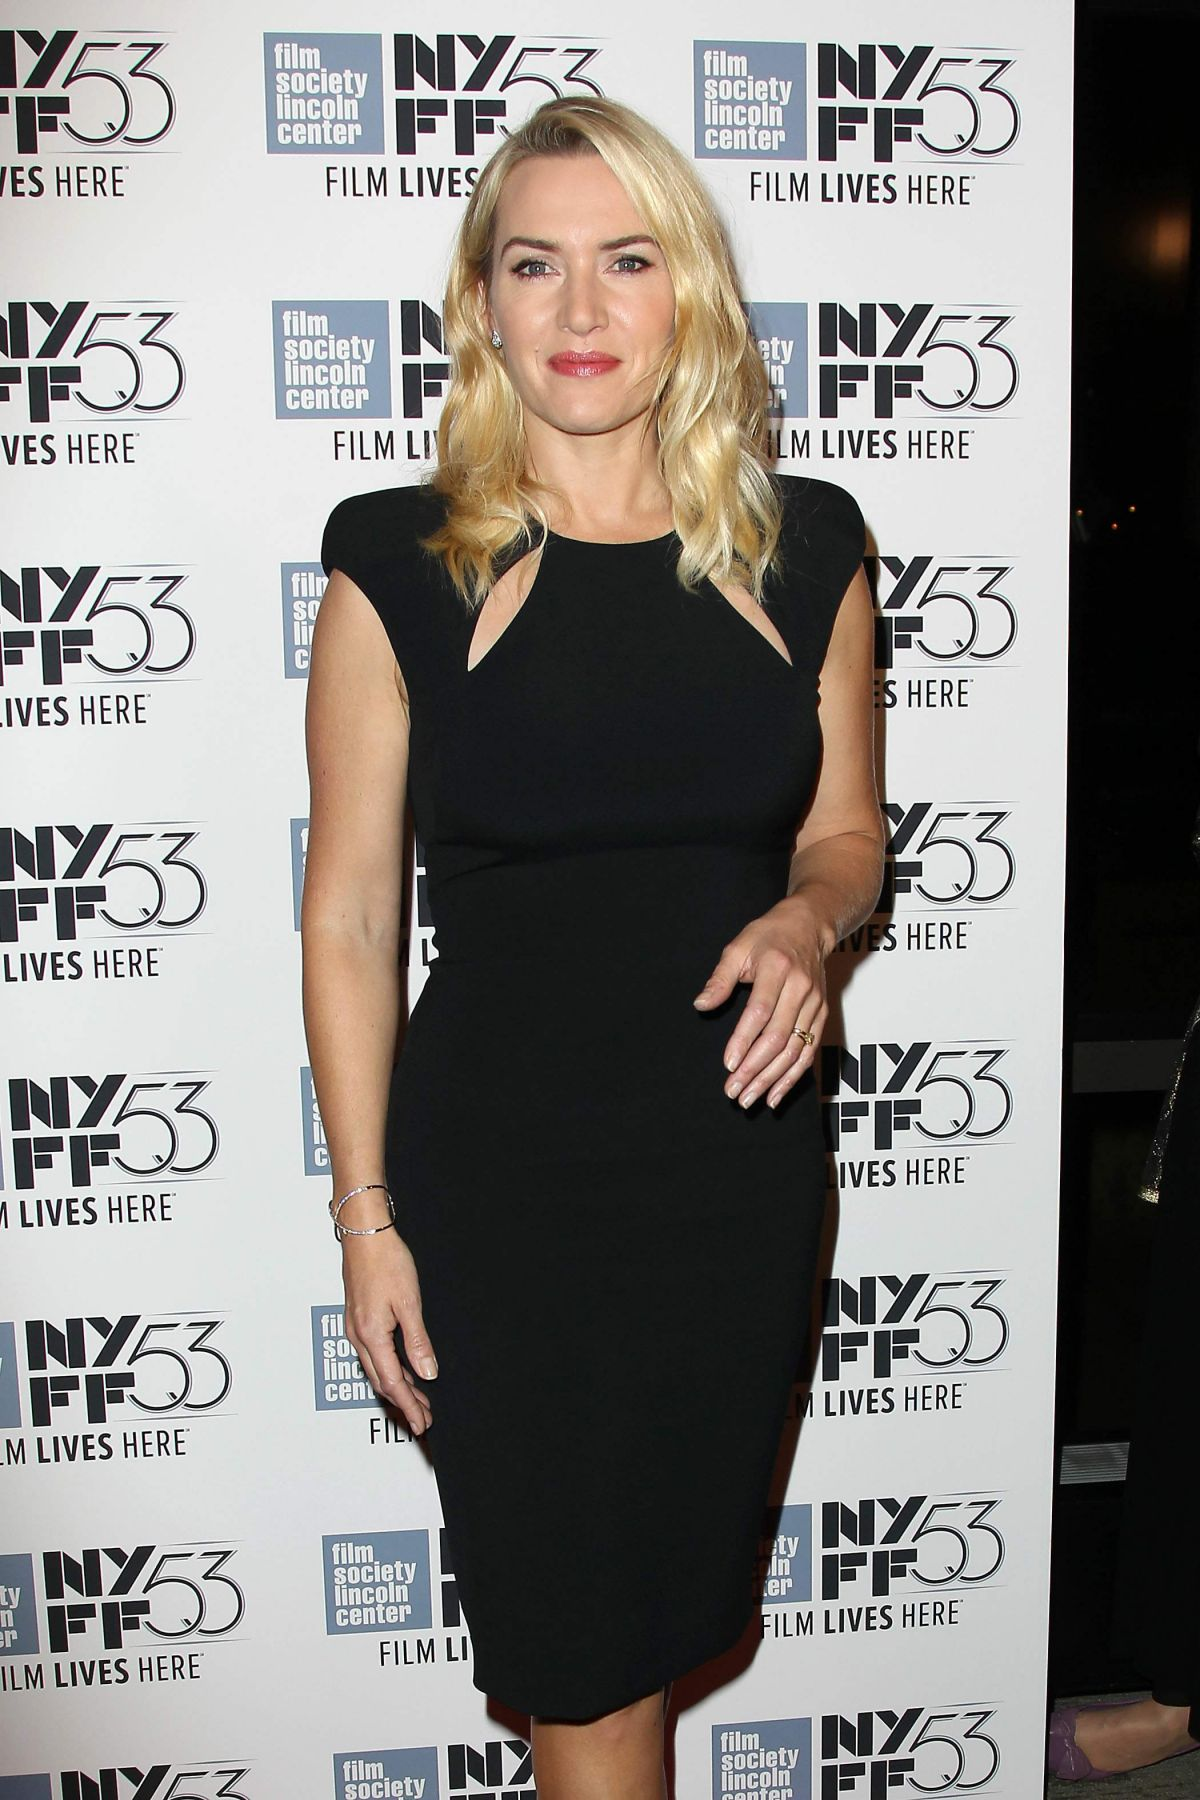 KATE WINSLET at An Evening with Kate Winslet at 53rd NYFF 10/06/2015